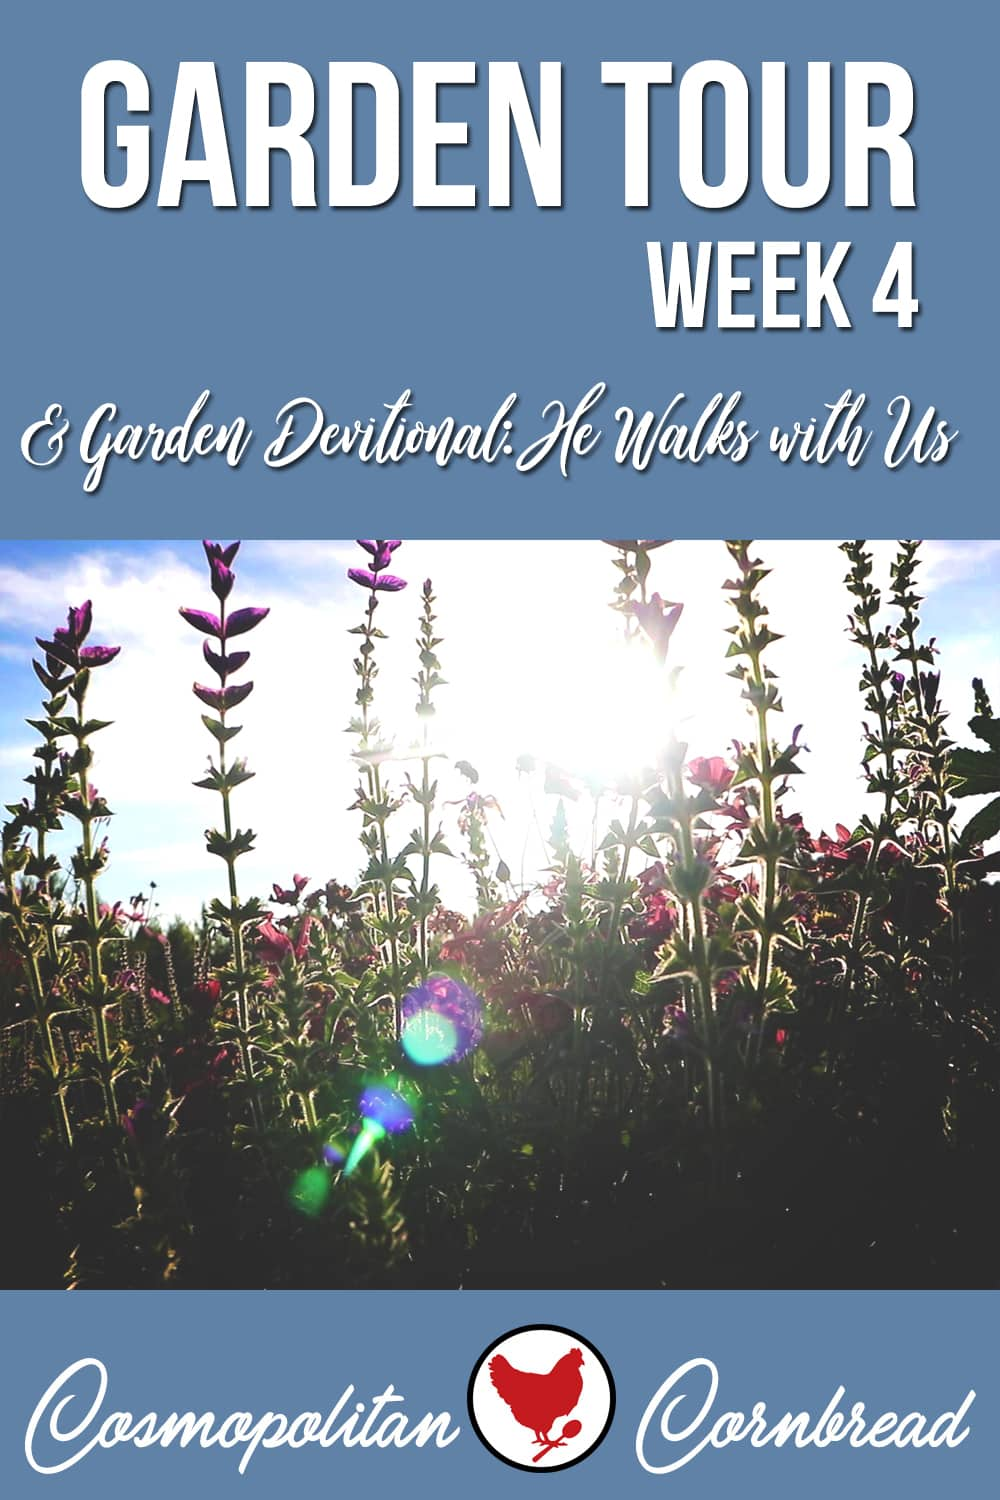 Week 4 of the garden, this is a full garden tour with a mini devotional.